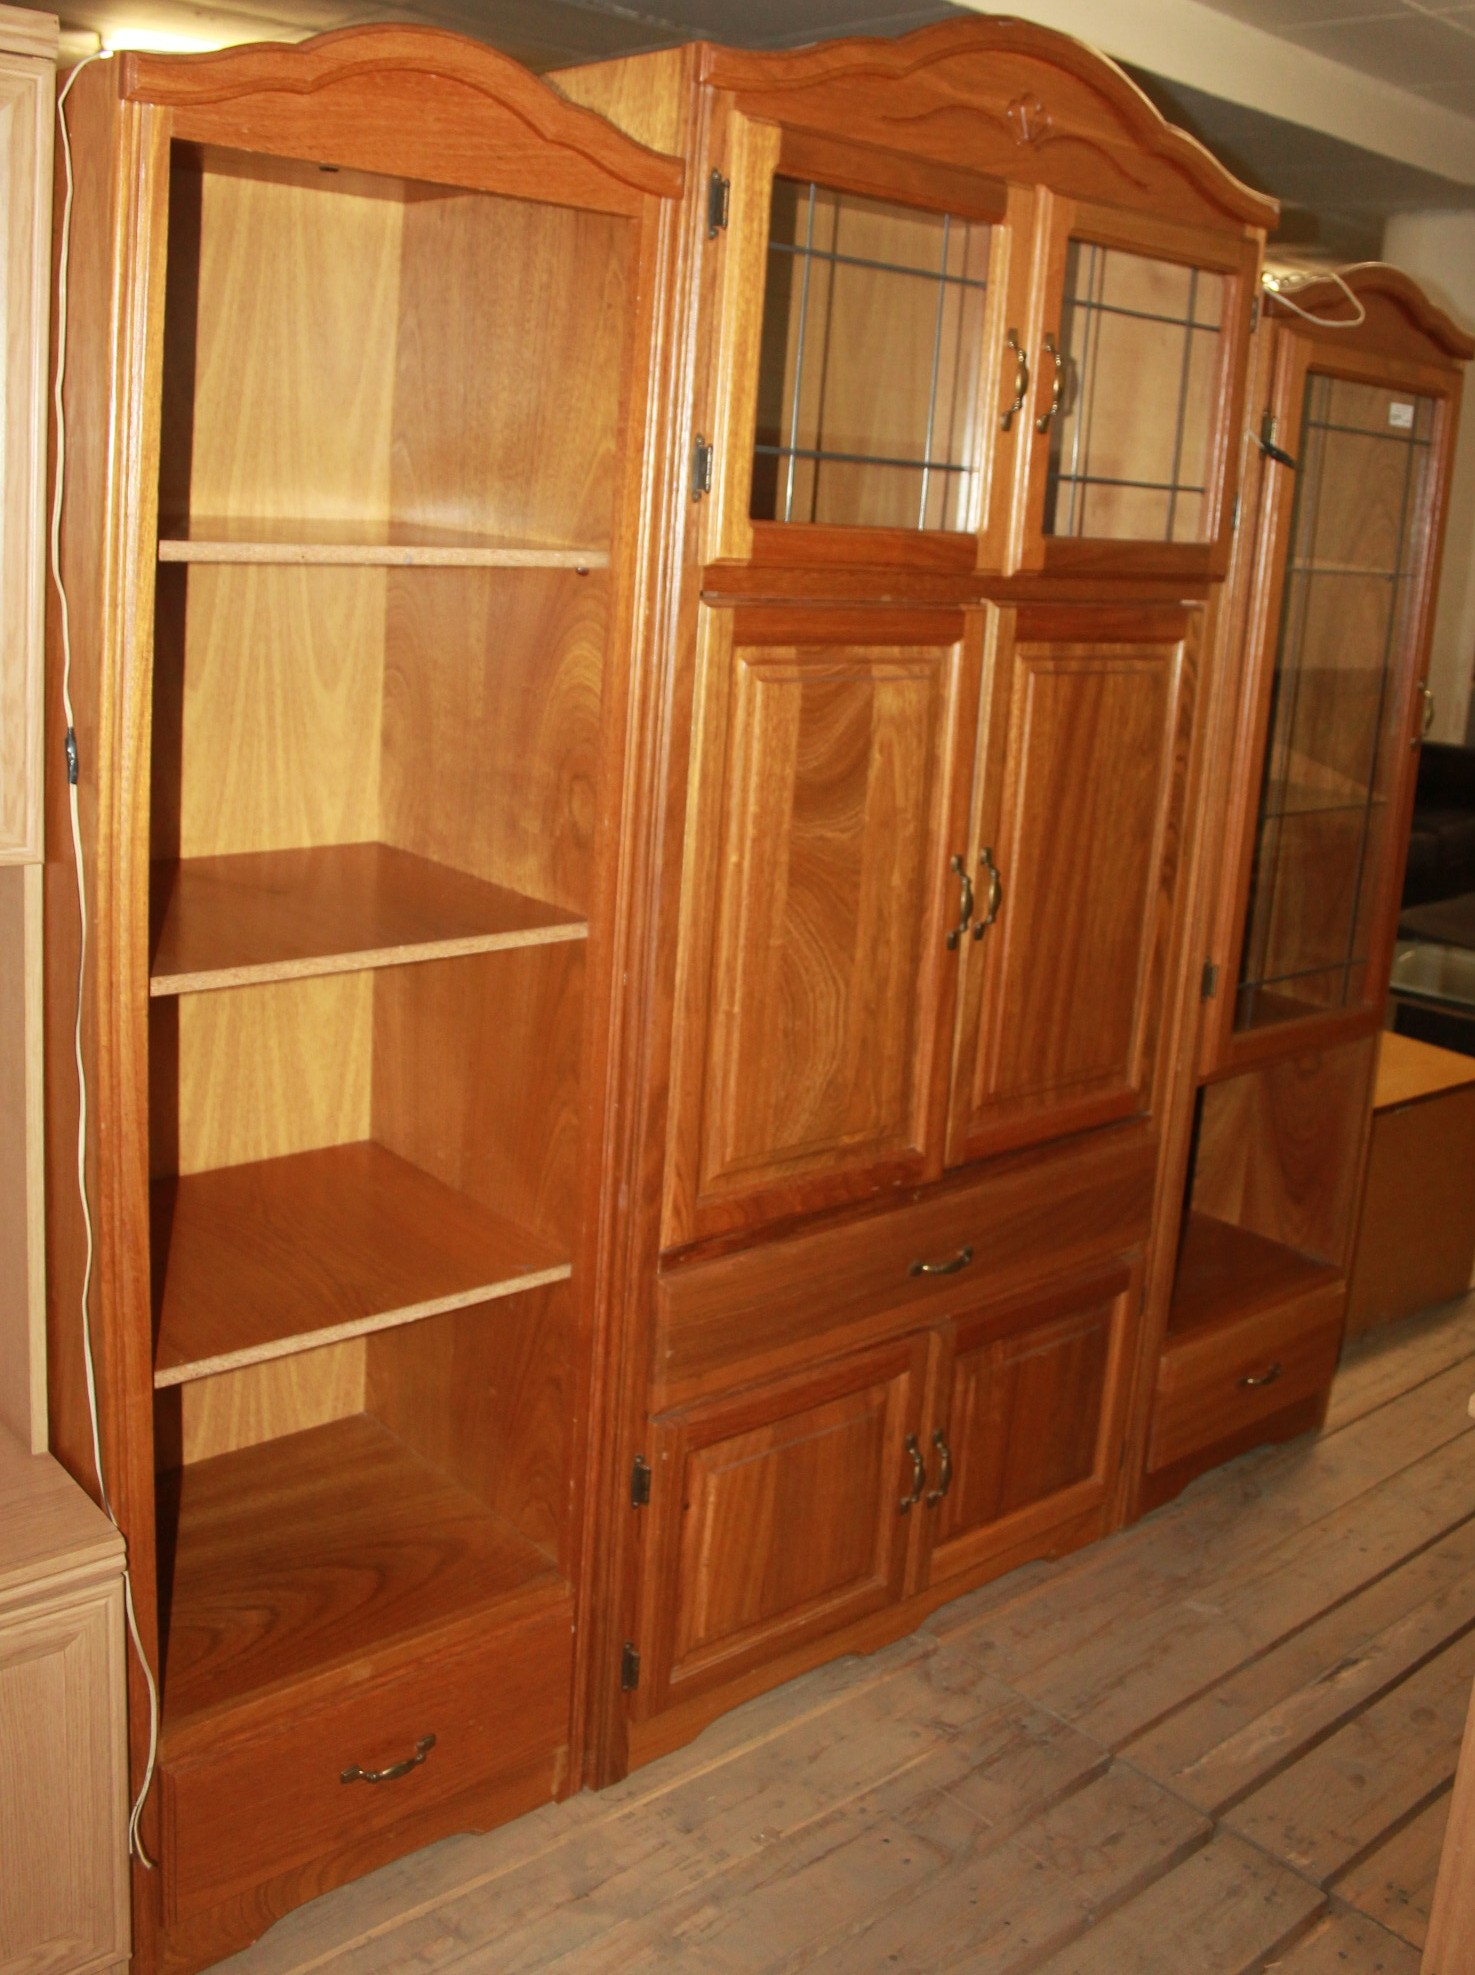 3 Piece wall unit S026979b #Rosettenvillepawnshop